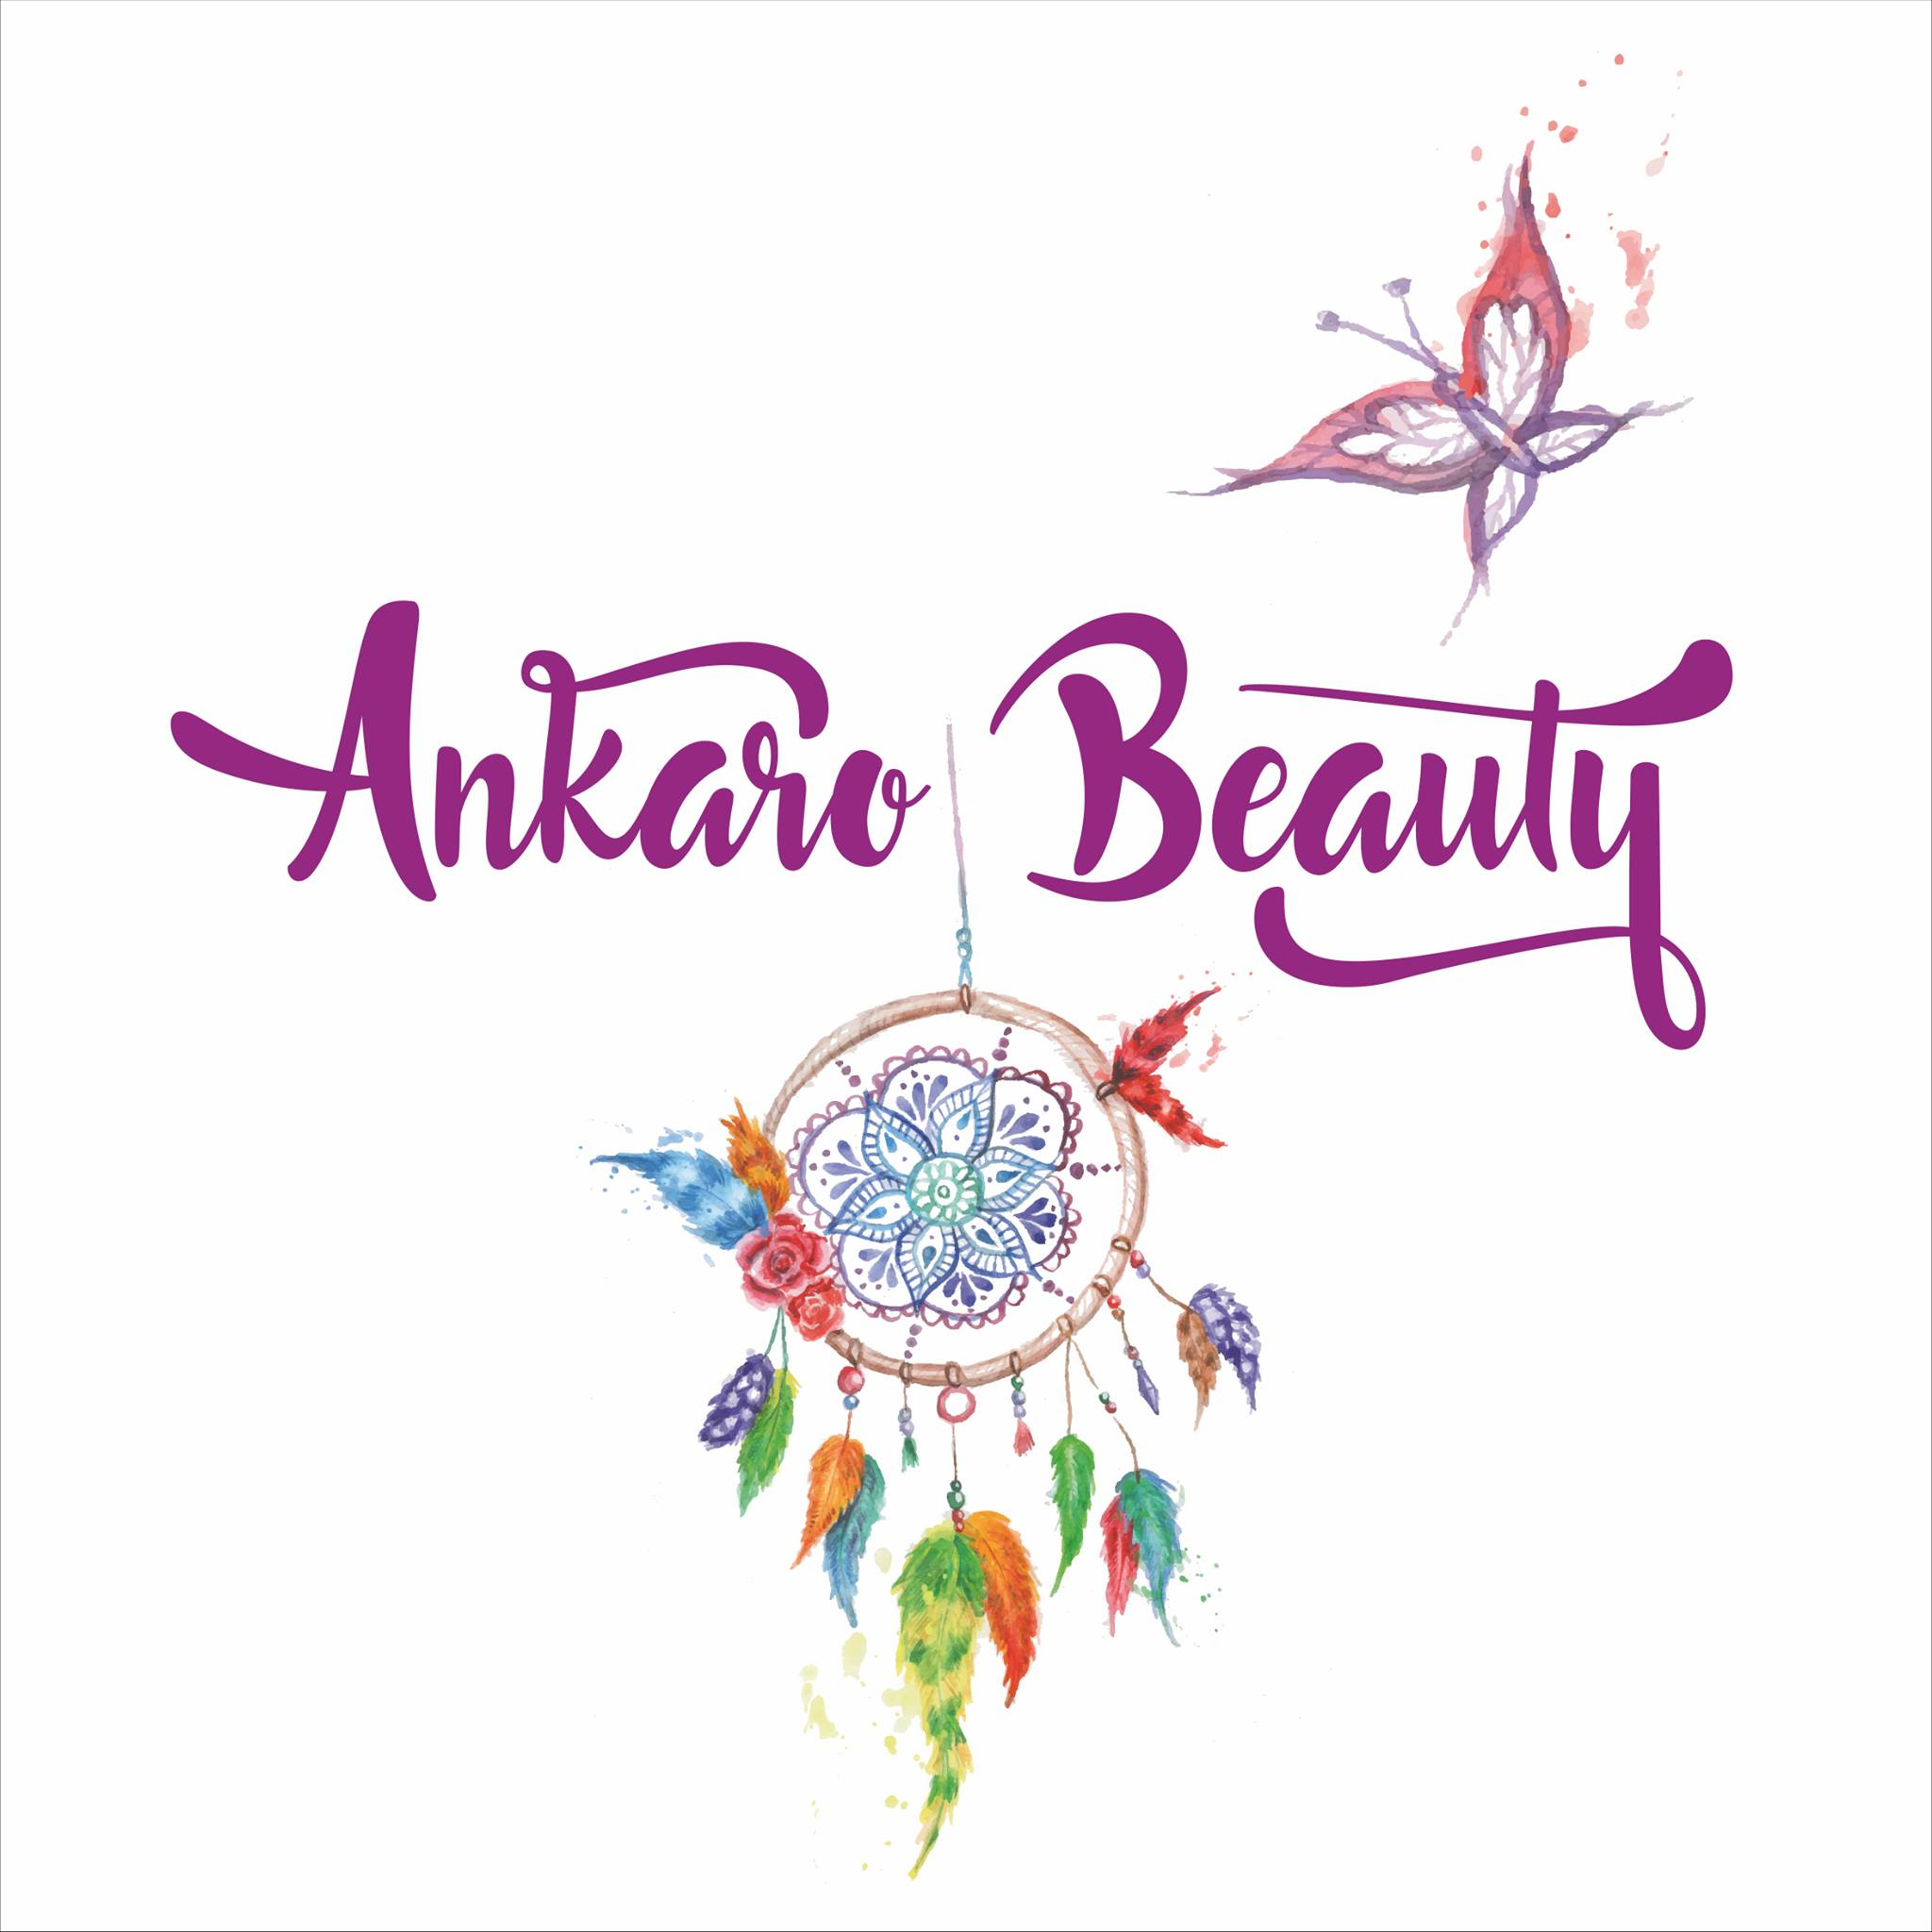 Ankaro Beauty